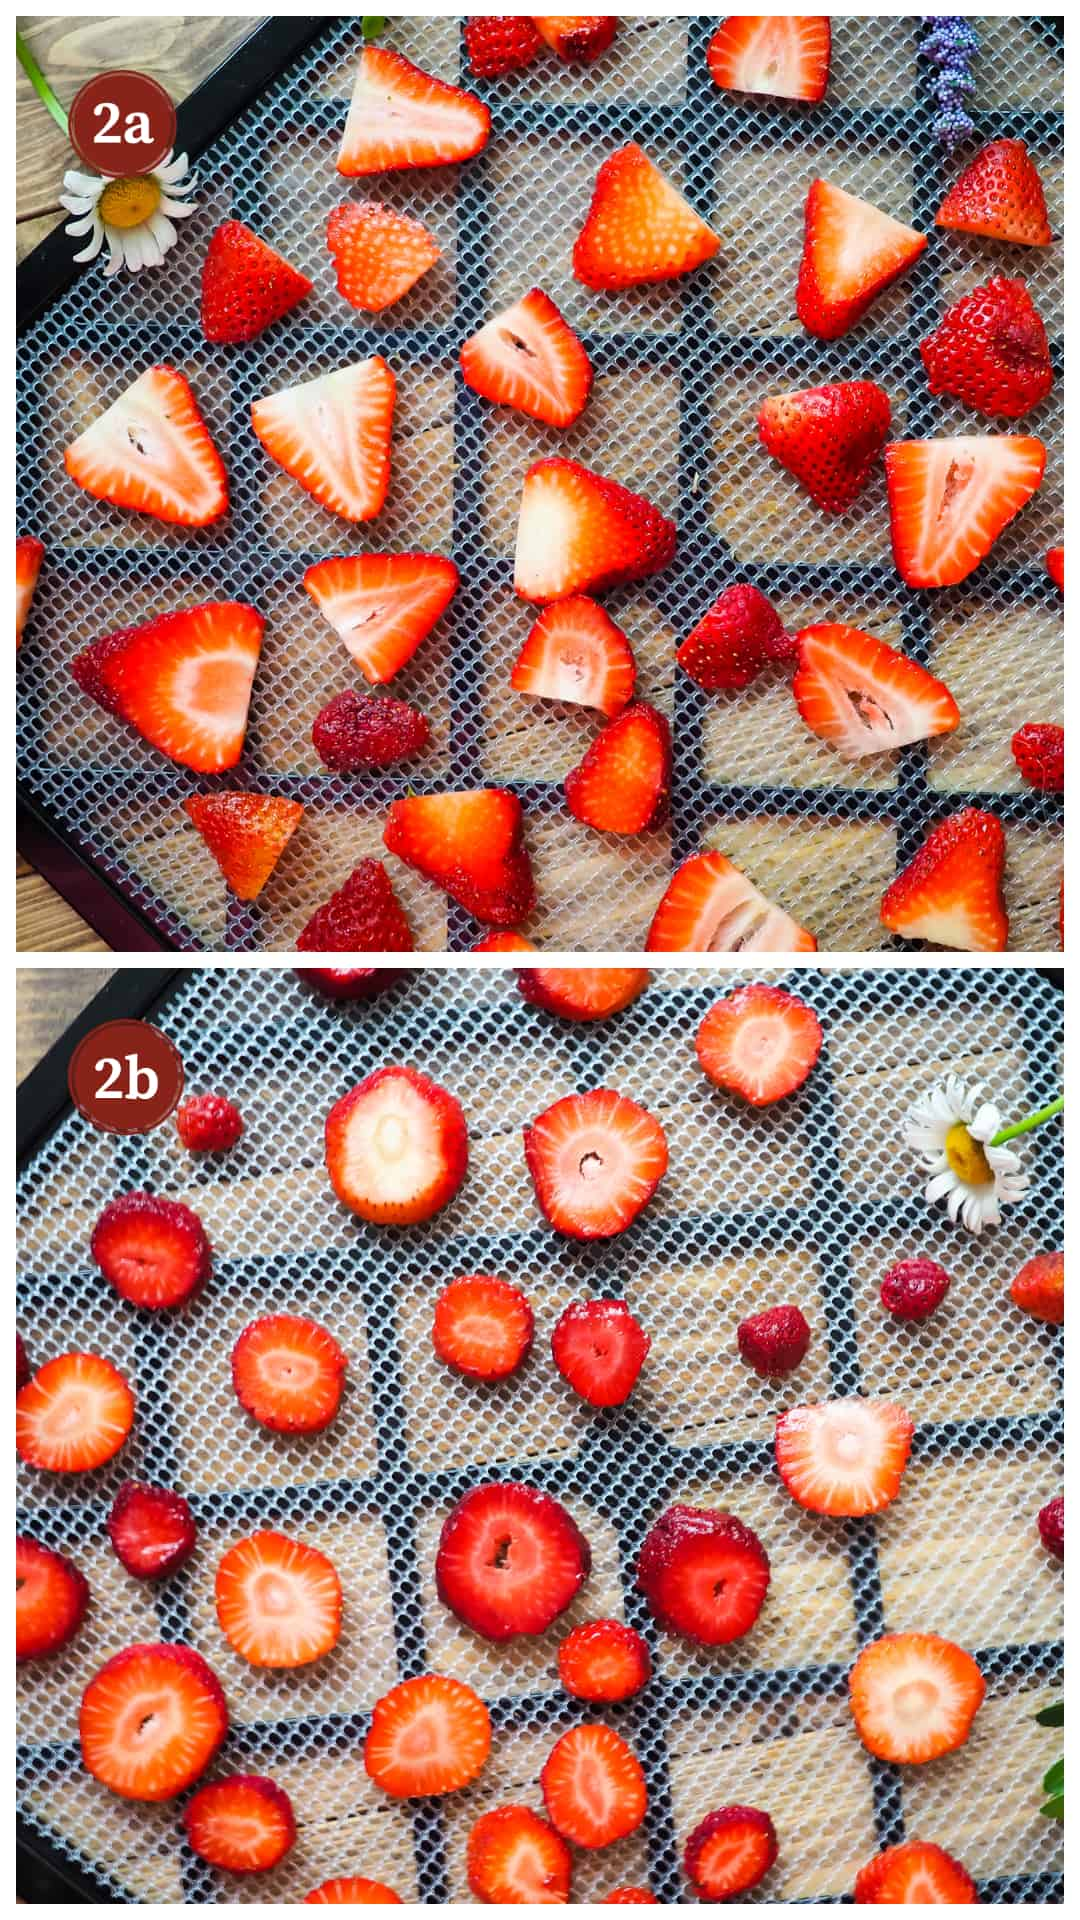 A process collage of images for making dehydrated strawberries, step 2 - sliced strawberries on the tray of a dehydrator.